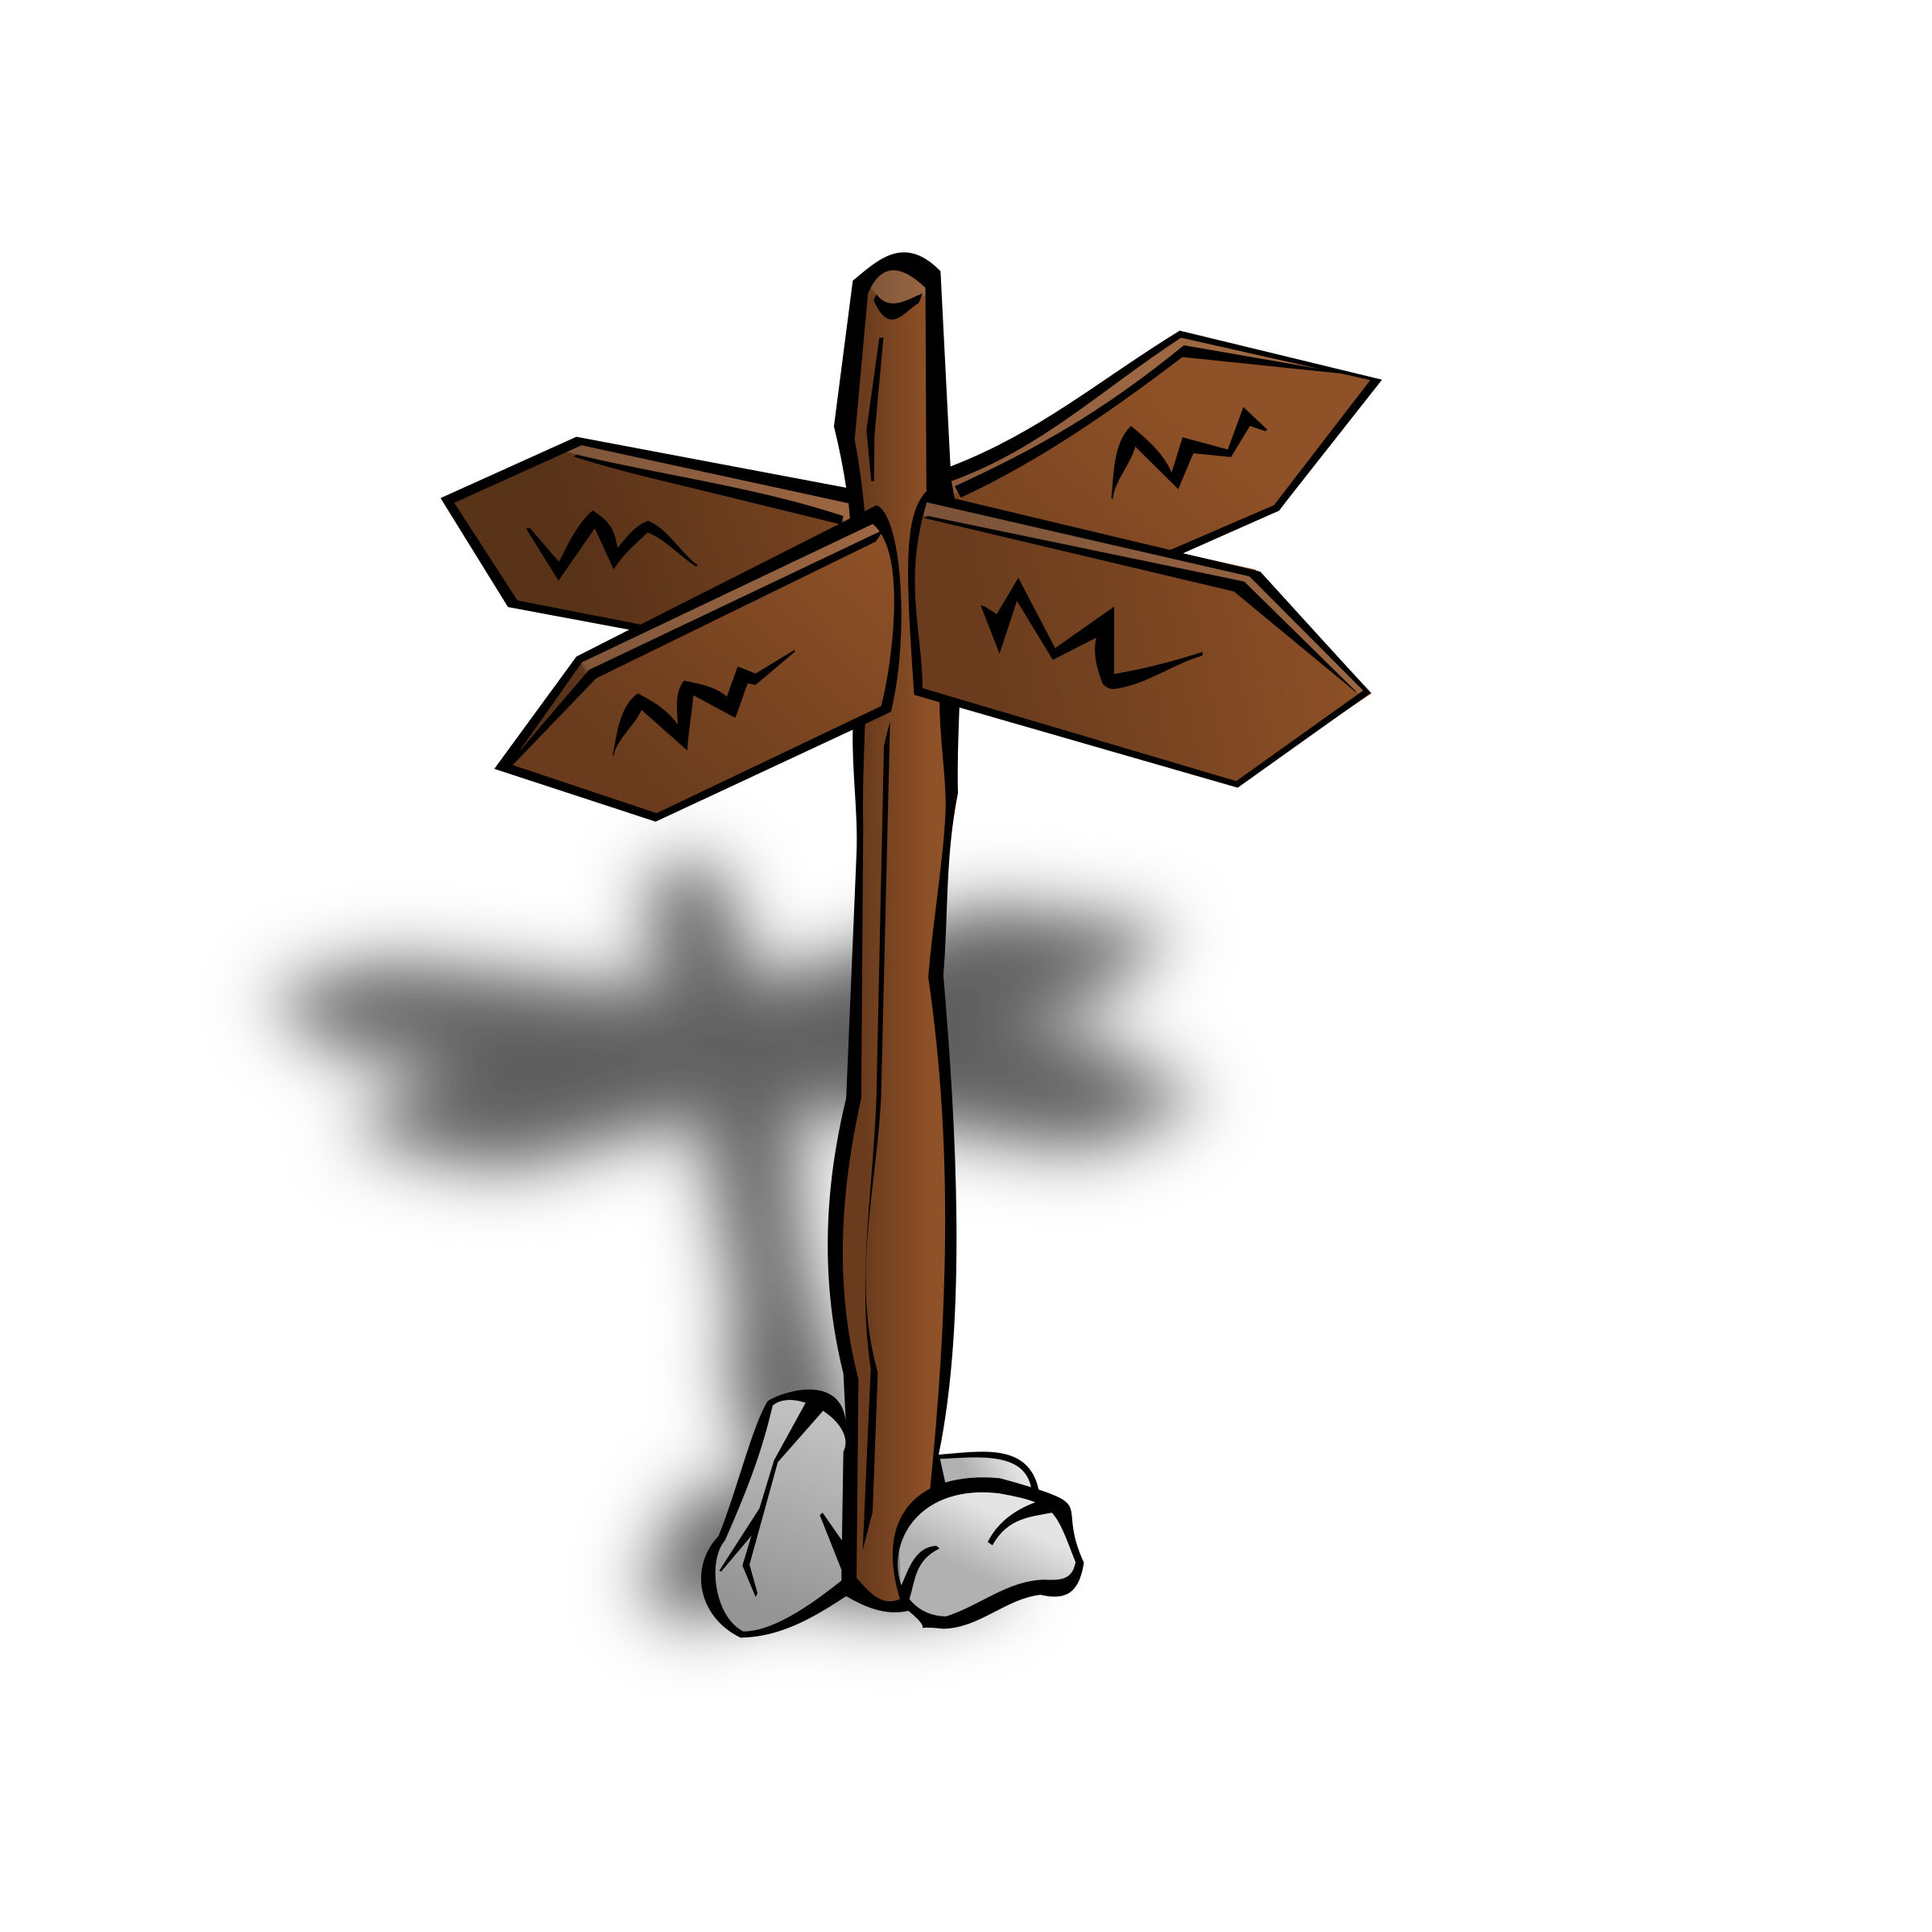 RPG map symbols: Crossroads Sign by nicubunu